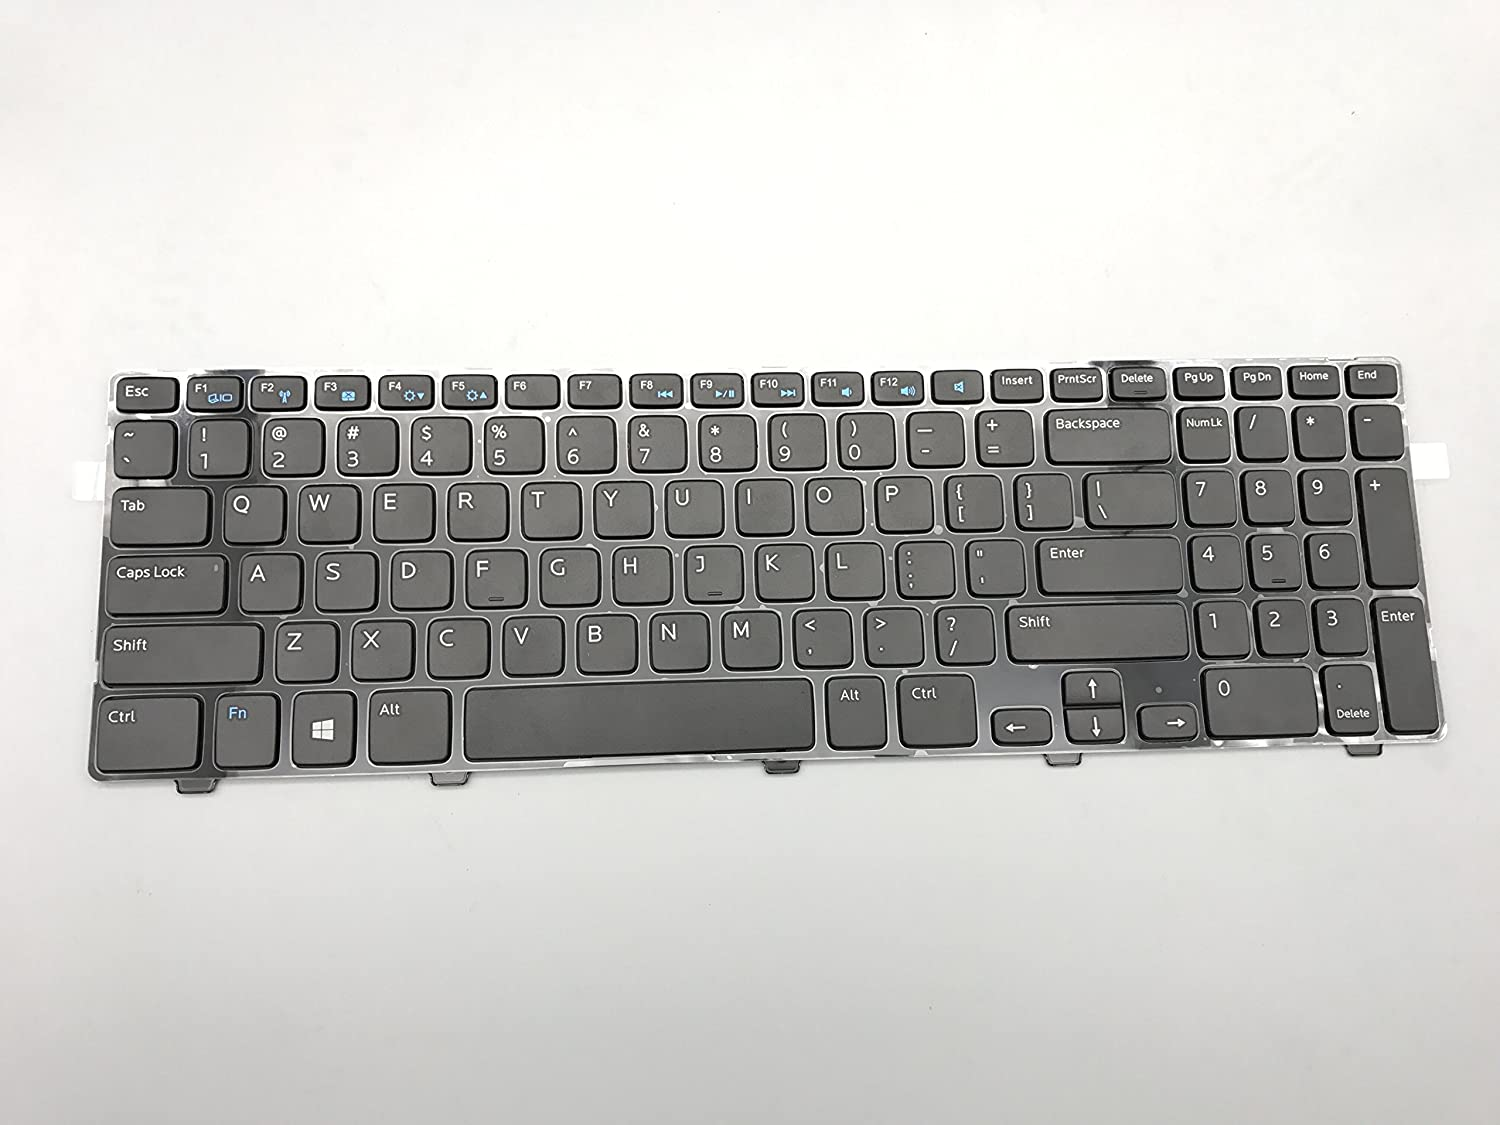 Laptop Replacement Keyboard for Dell Inspiron 15 3521 15R 5521 MP-12F83US-698 PK130SZ3A00 US Layout 3521